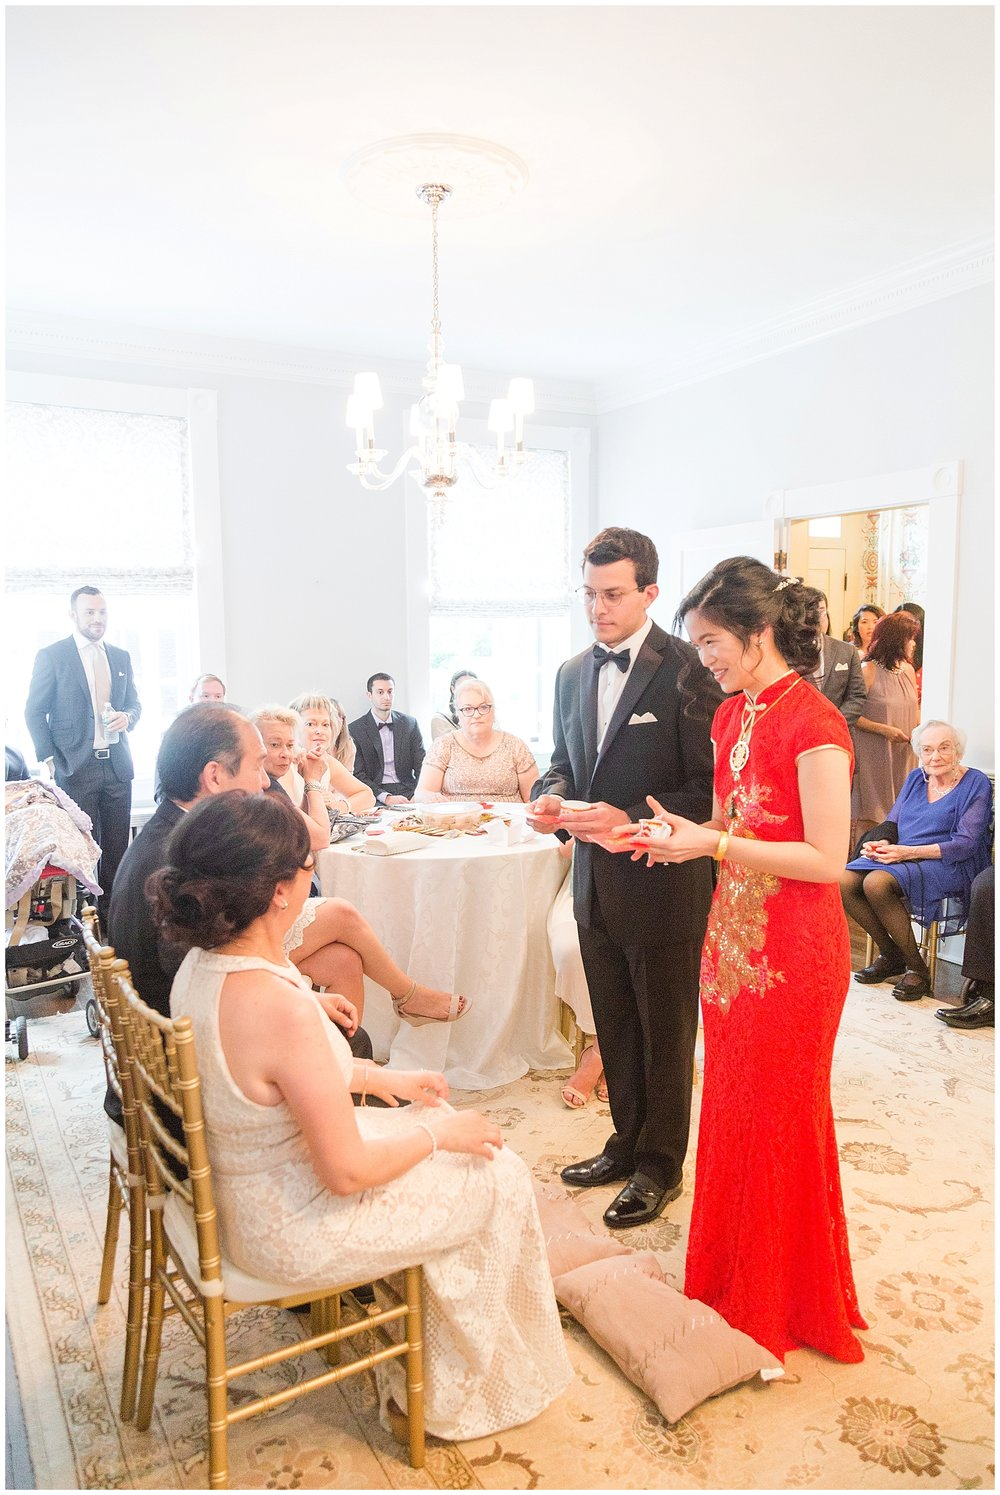 Leesburg-Wedding-Photos_Thomas-Birkby-House-Wedding_Jessica-Green-Photography-60.jpg